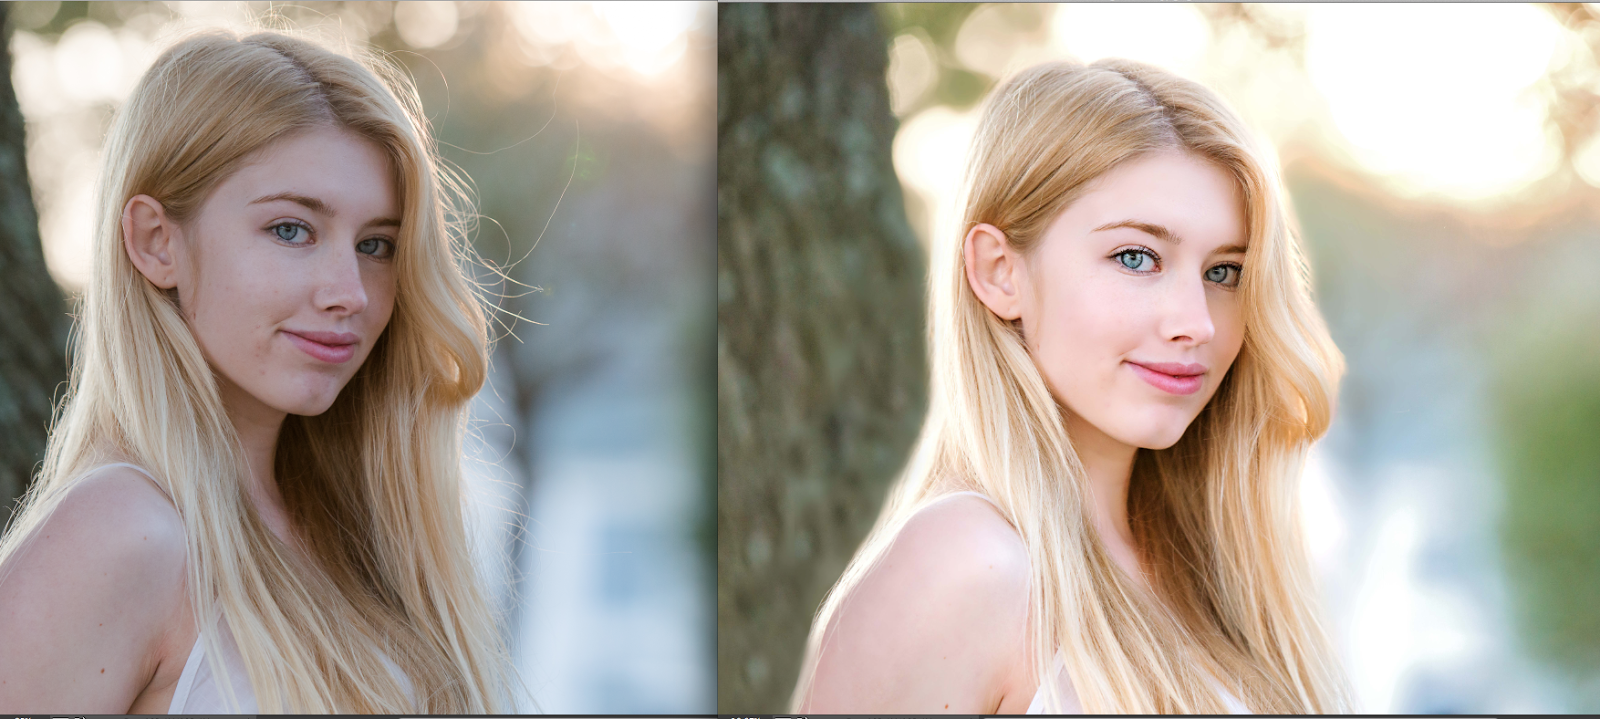 Serendipity is Sweet: WW- Before and After Editing